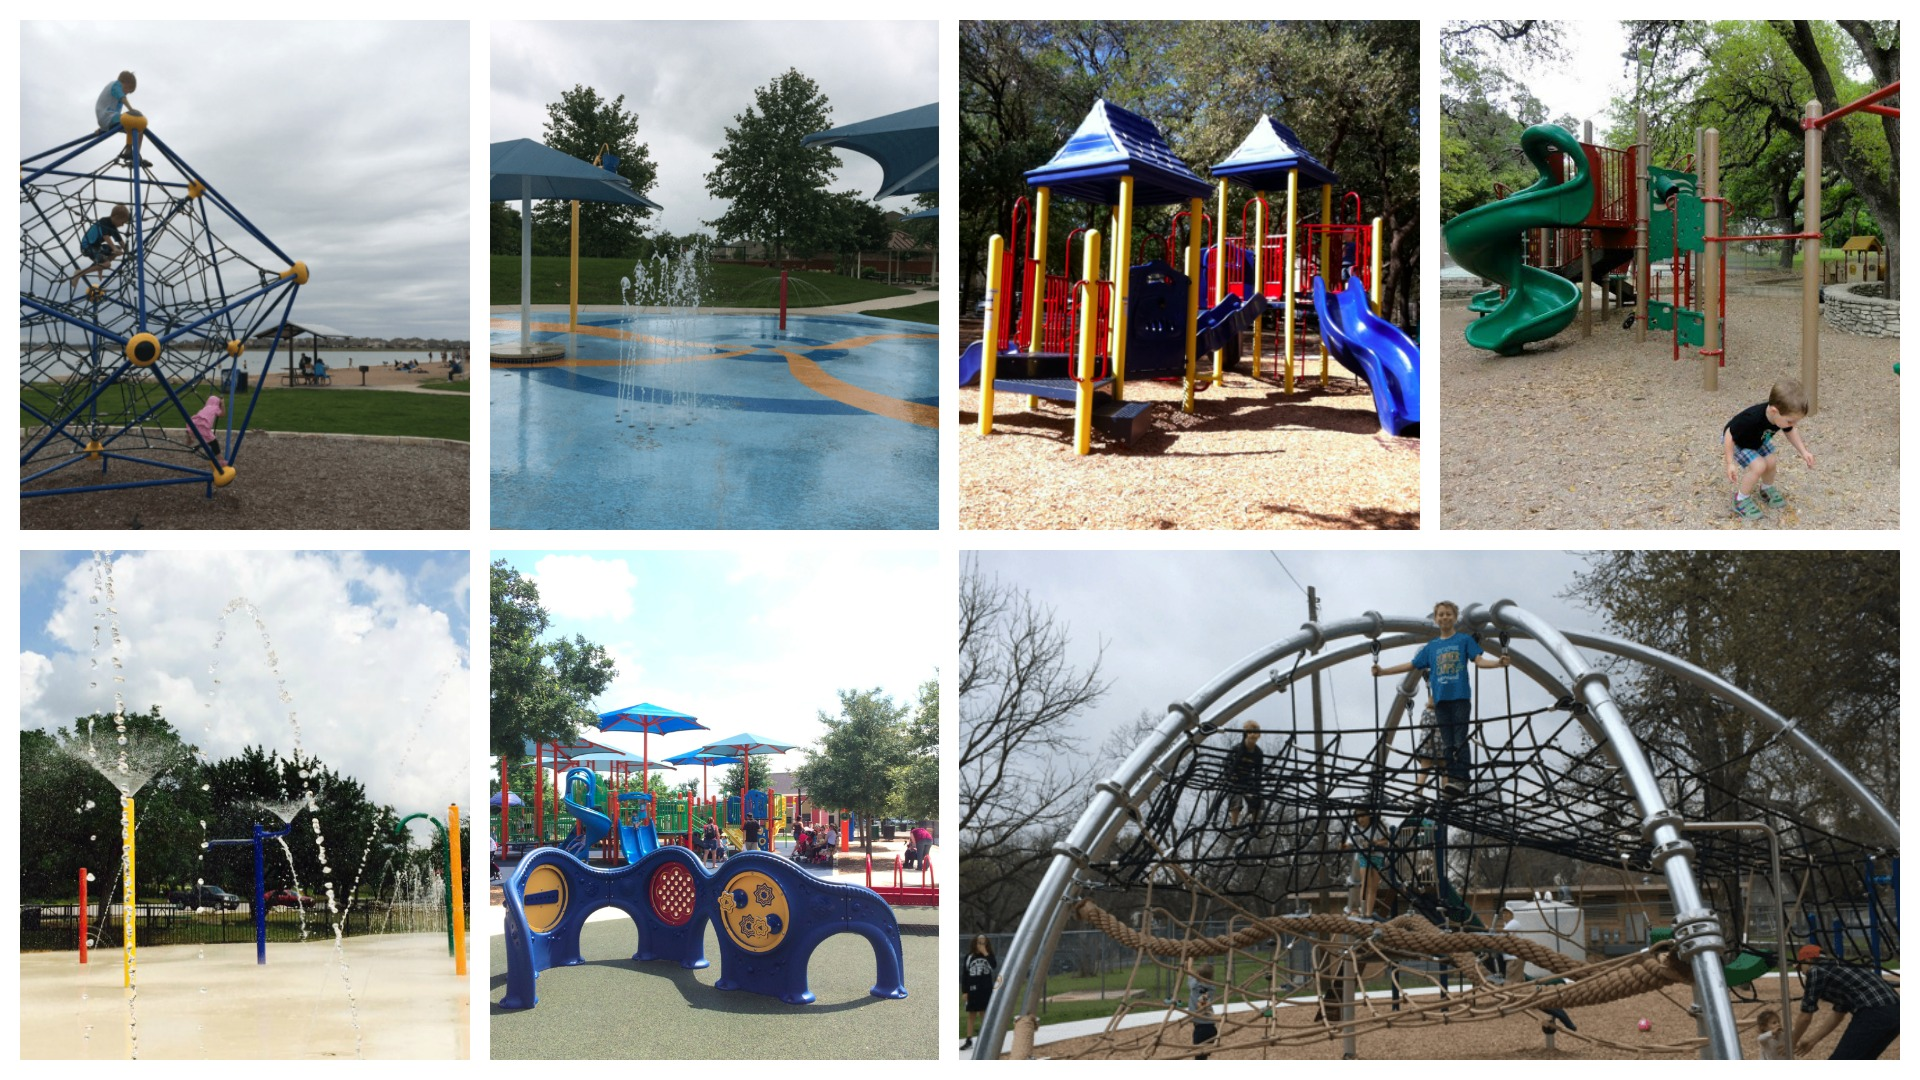 Local Austin parks // The Ultimate List of Kid-Friendly Party Venues in Austin - Over 50 birthday party venues in Austin for babies, toddlers, and preschoolers sorted by location and price. Plus an interactive map to find your closest-to-home options. #austintexas #atx #austintx